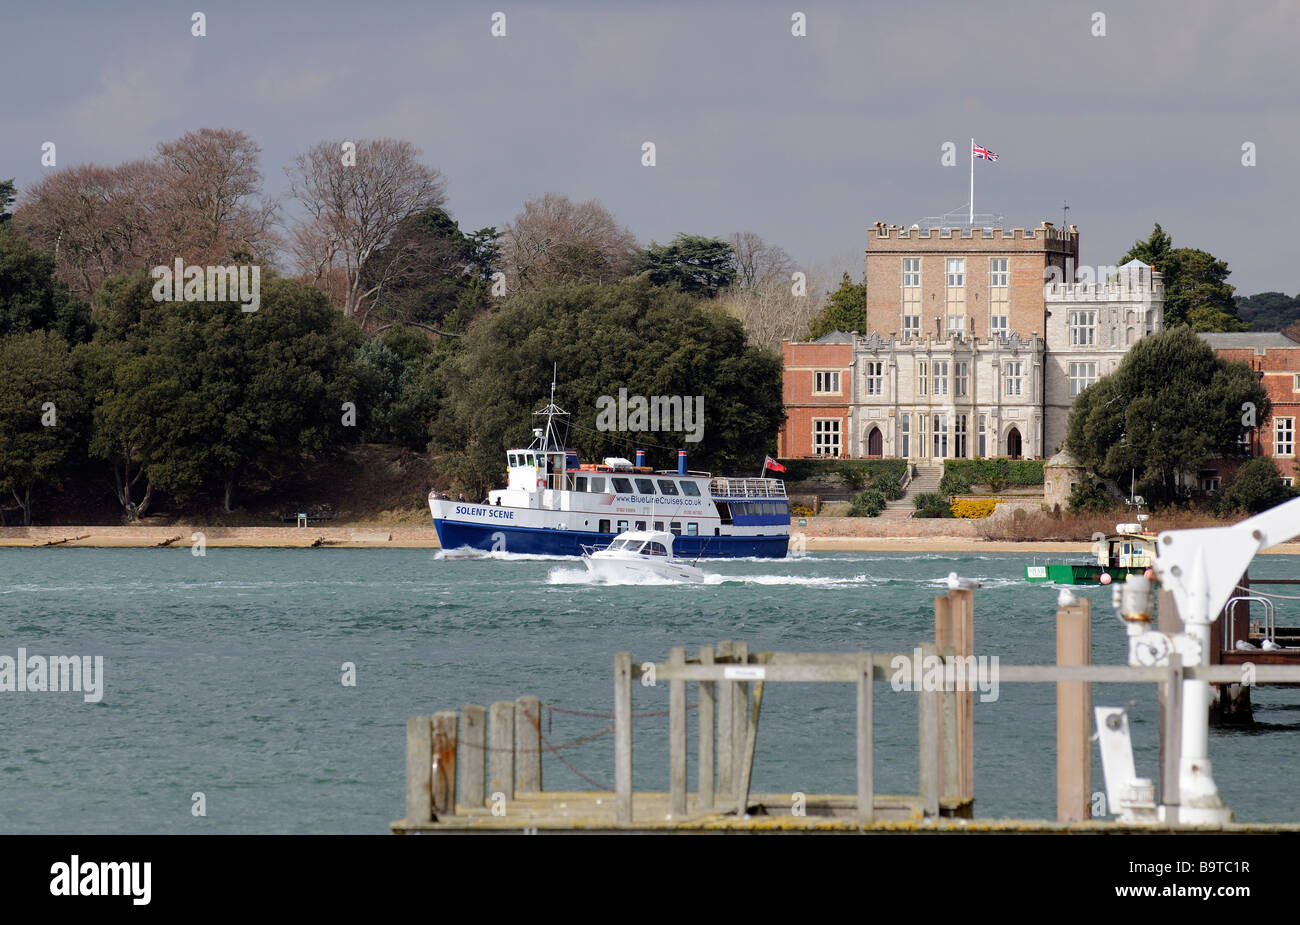 Branksea Castle on Brownsea Island Dorset England UK The castle is owned by the John Lewis Partnership - Stock Image